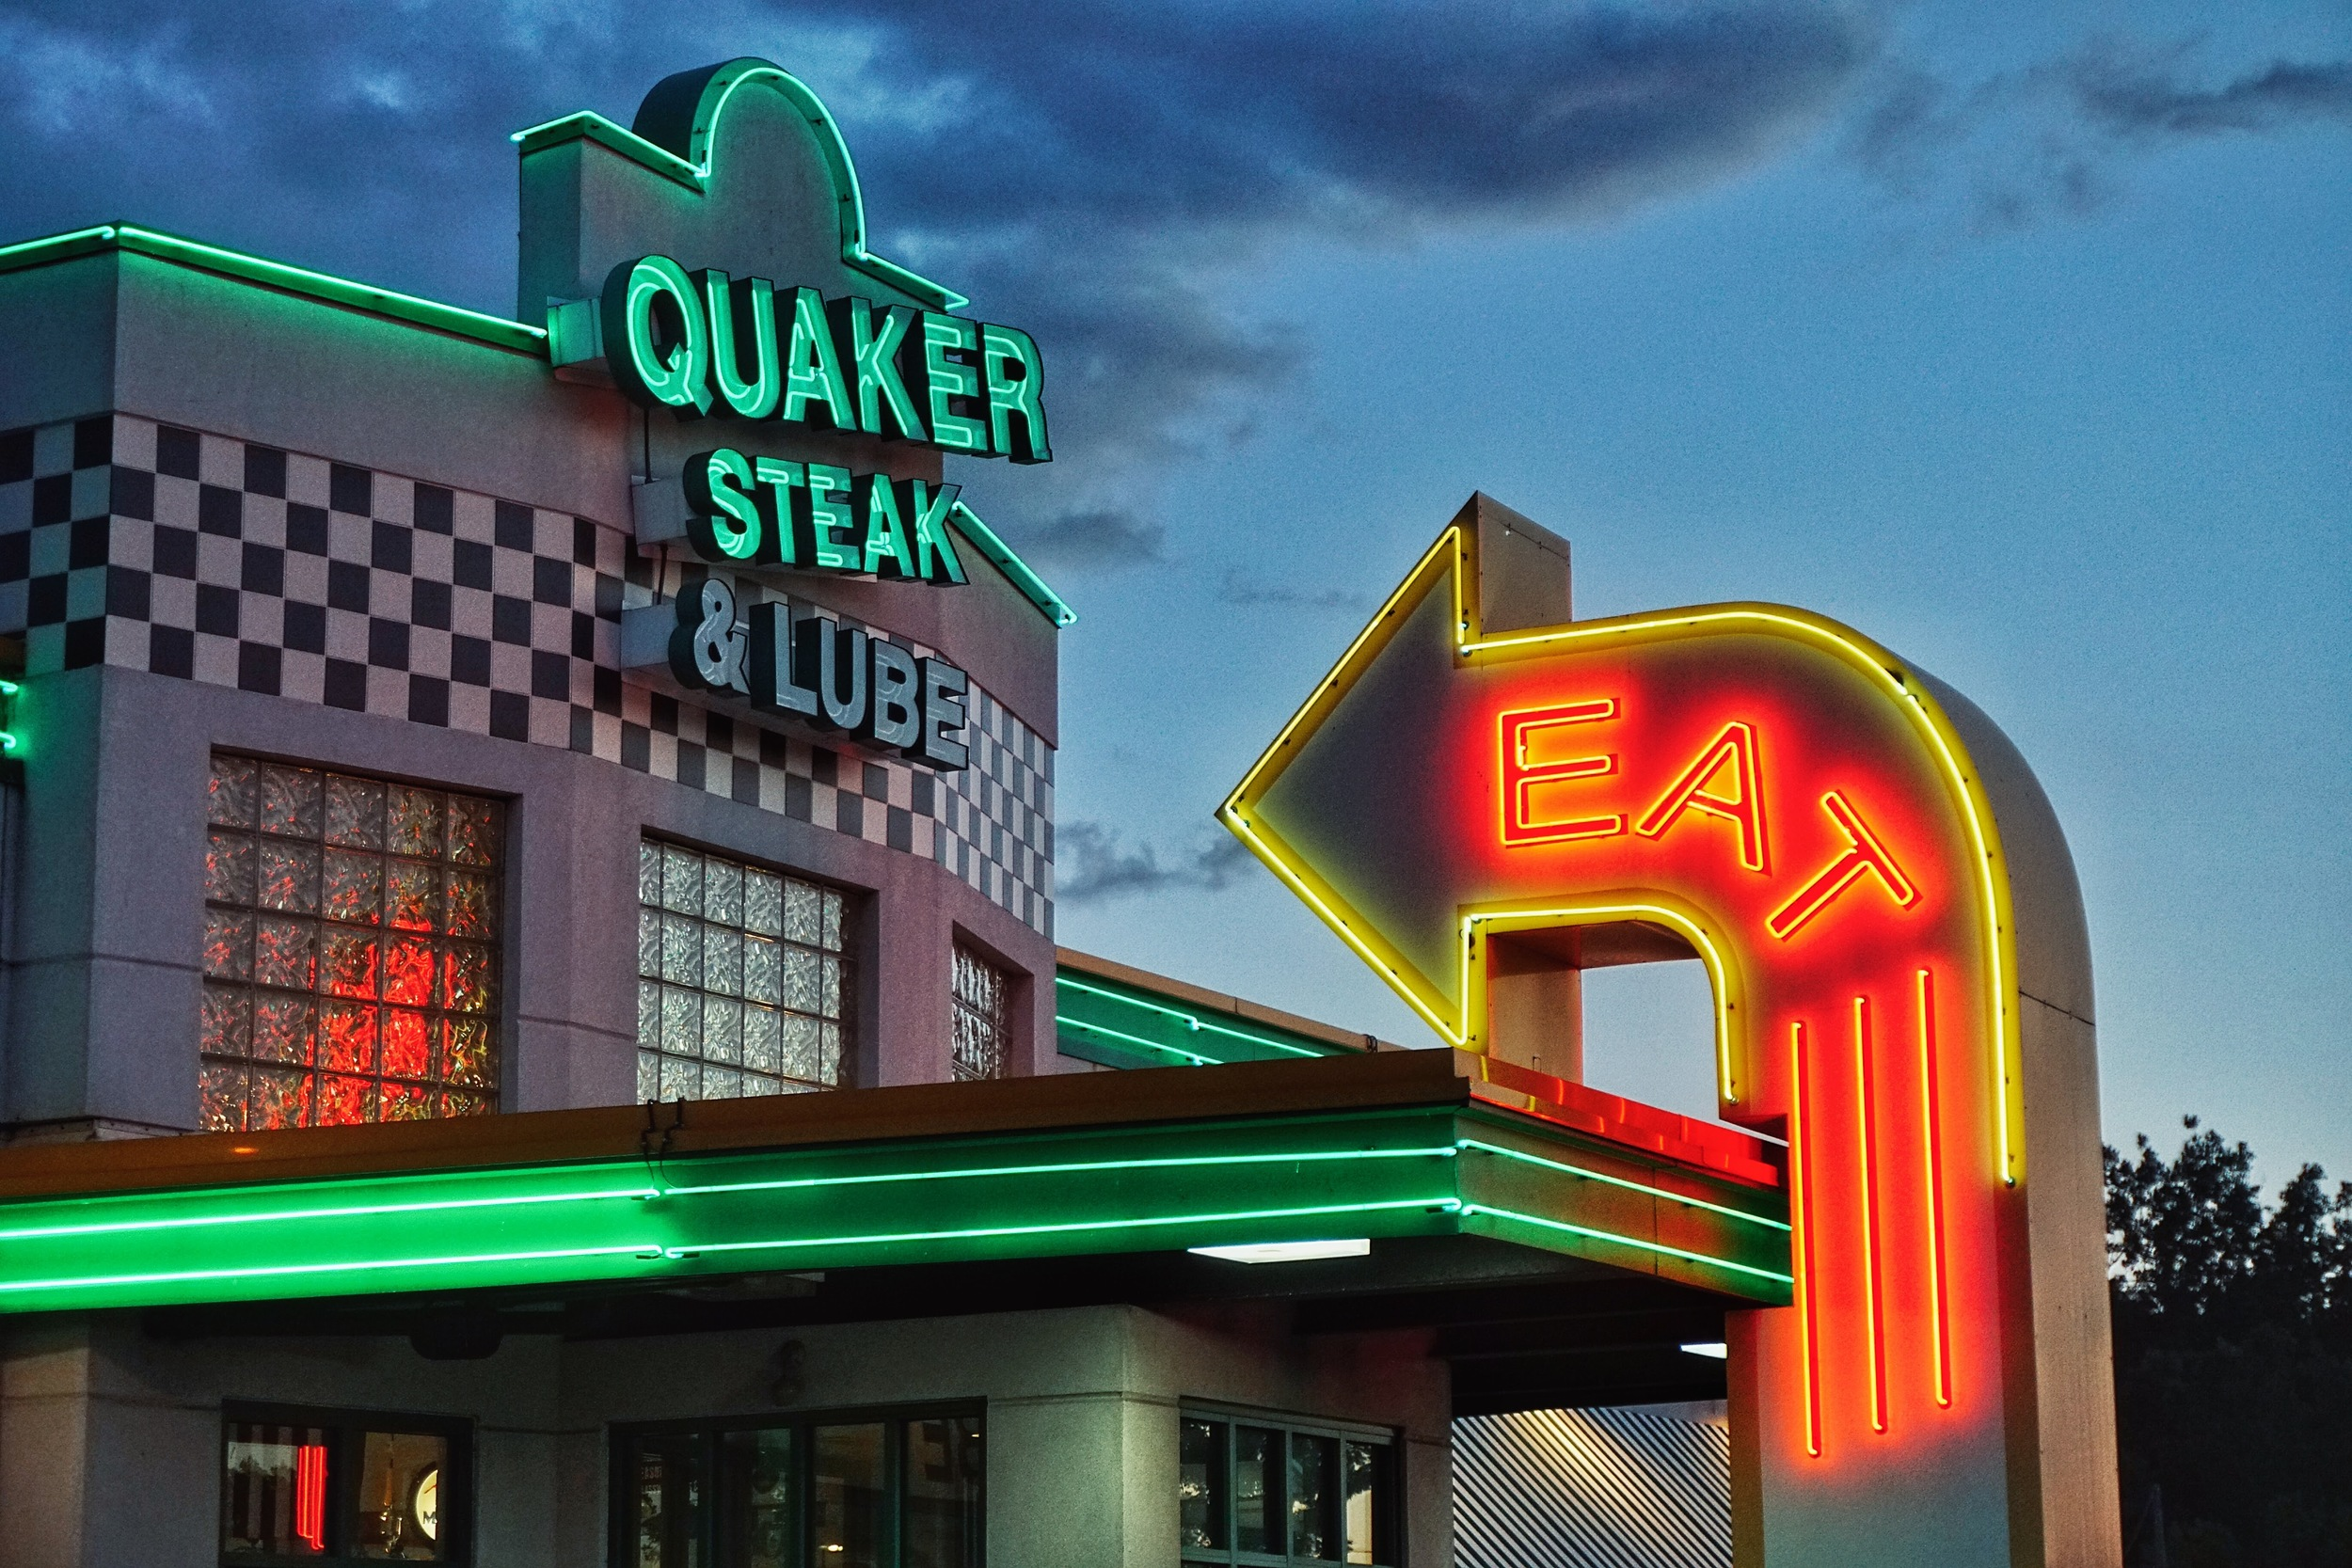 Quaker Steak n' Lube